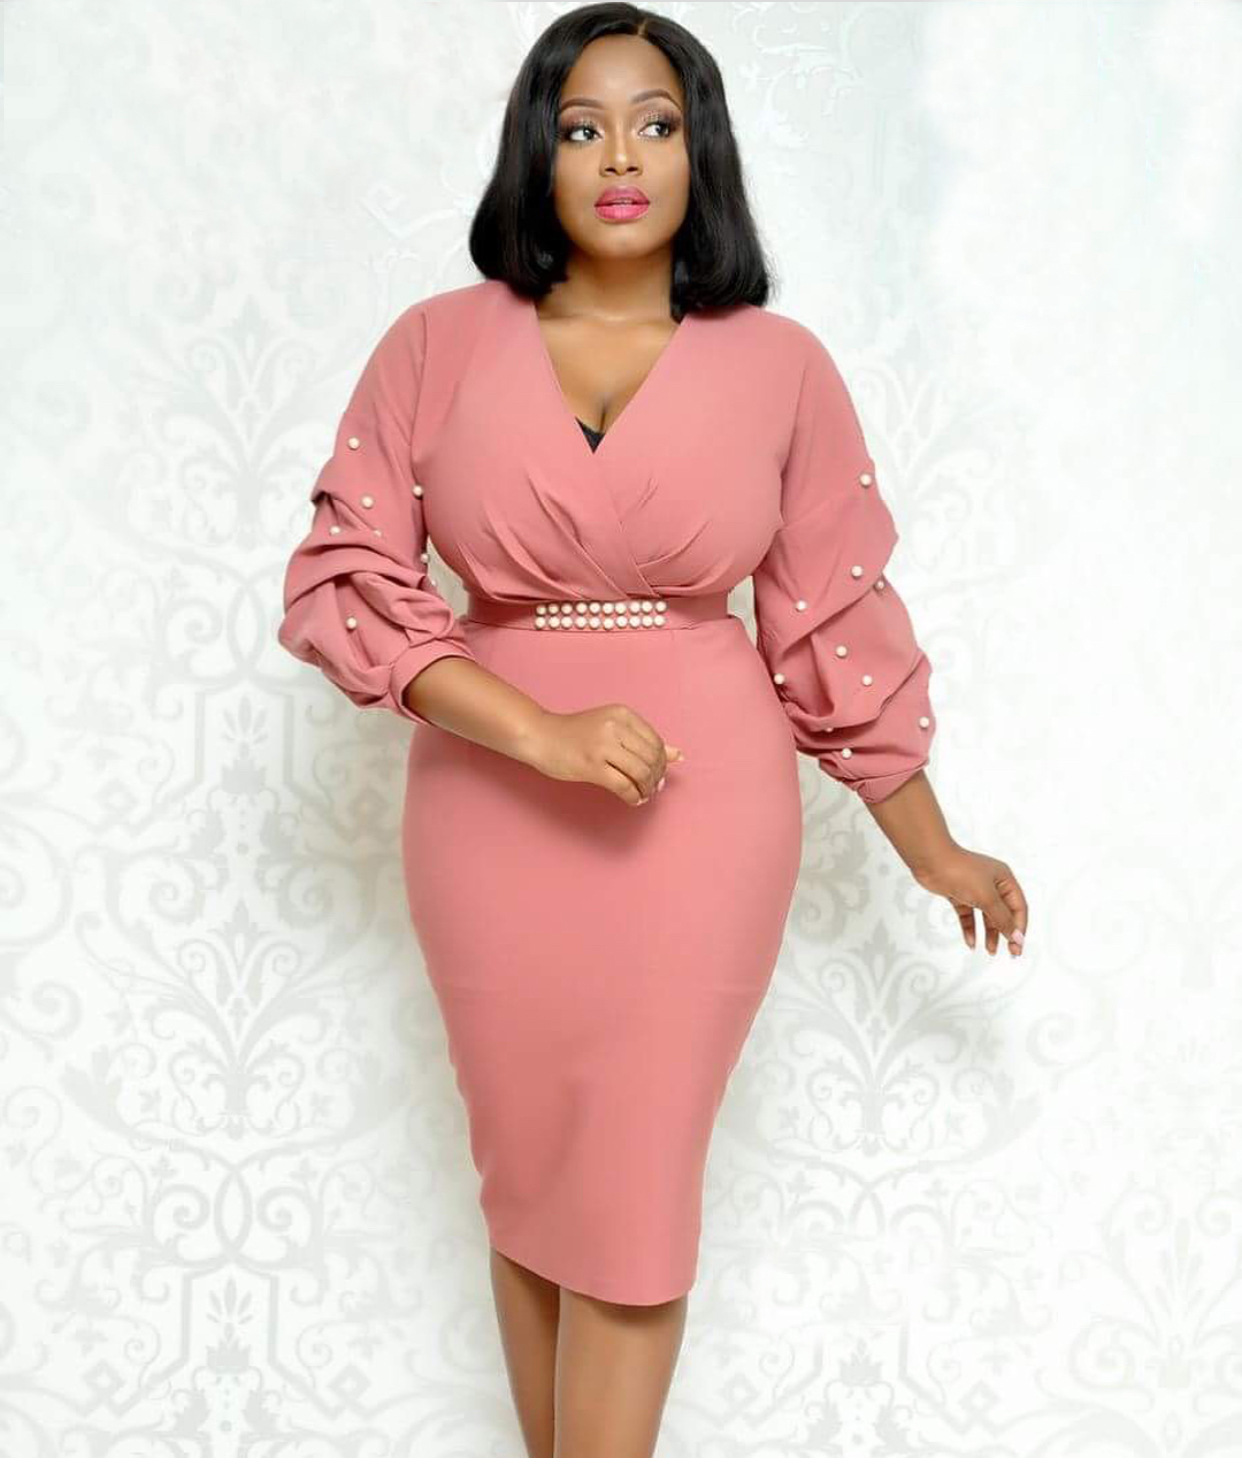 cef95e6f0d7 2018 new summer fashion style african women plus size dress